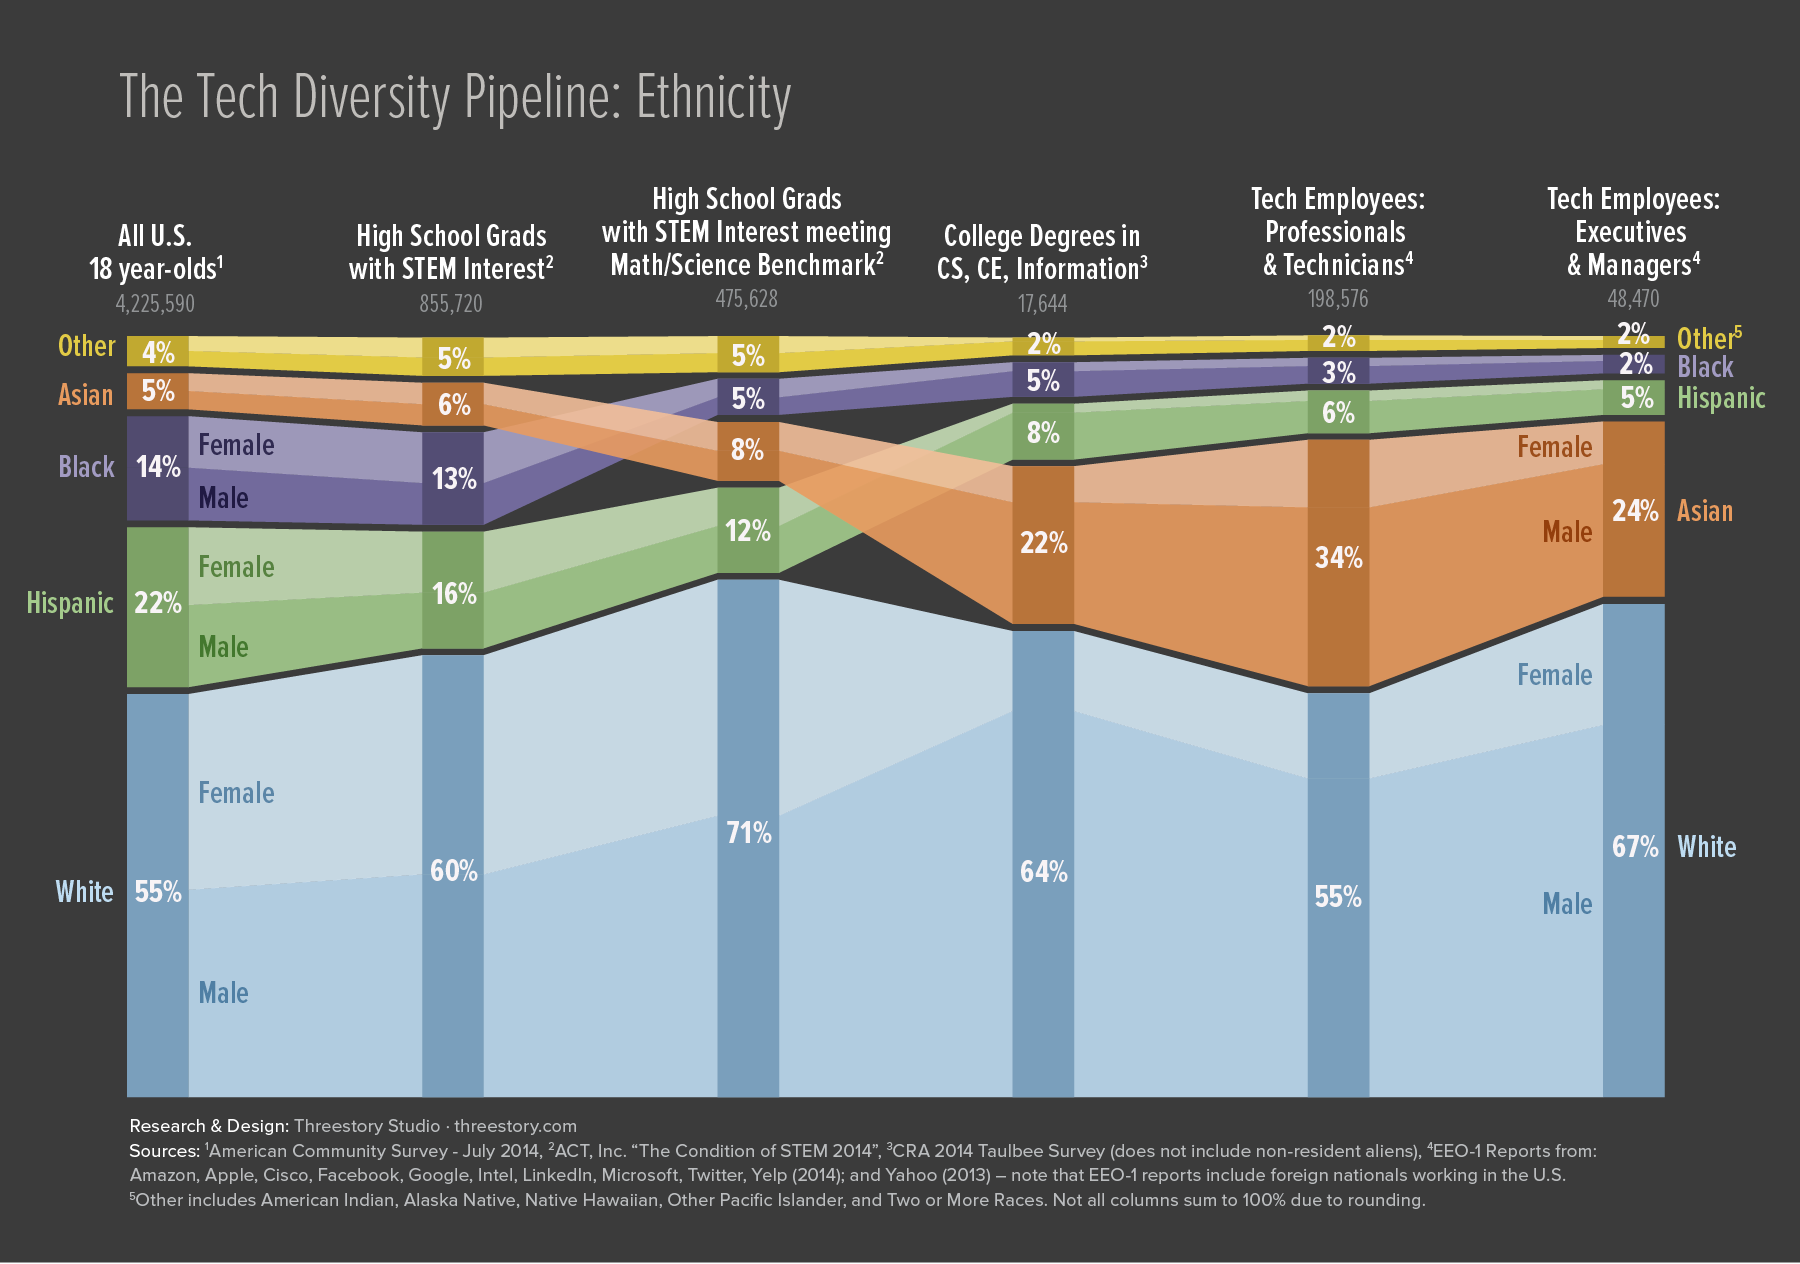 Diversity in the Tech Workforce